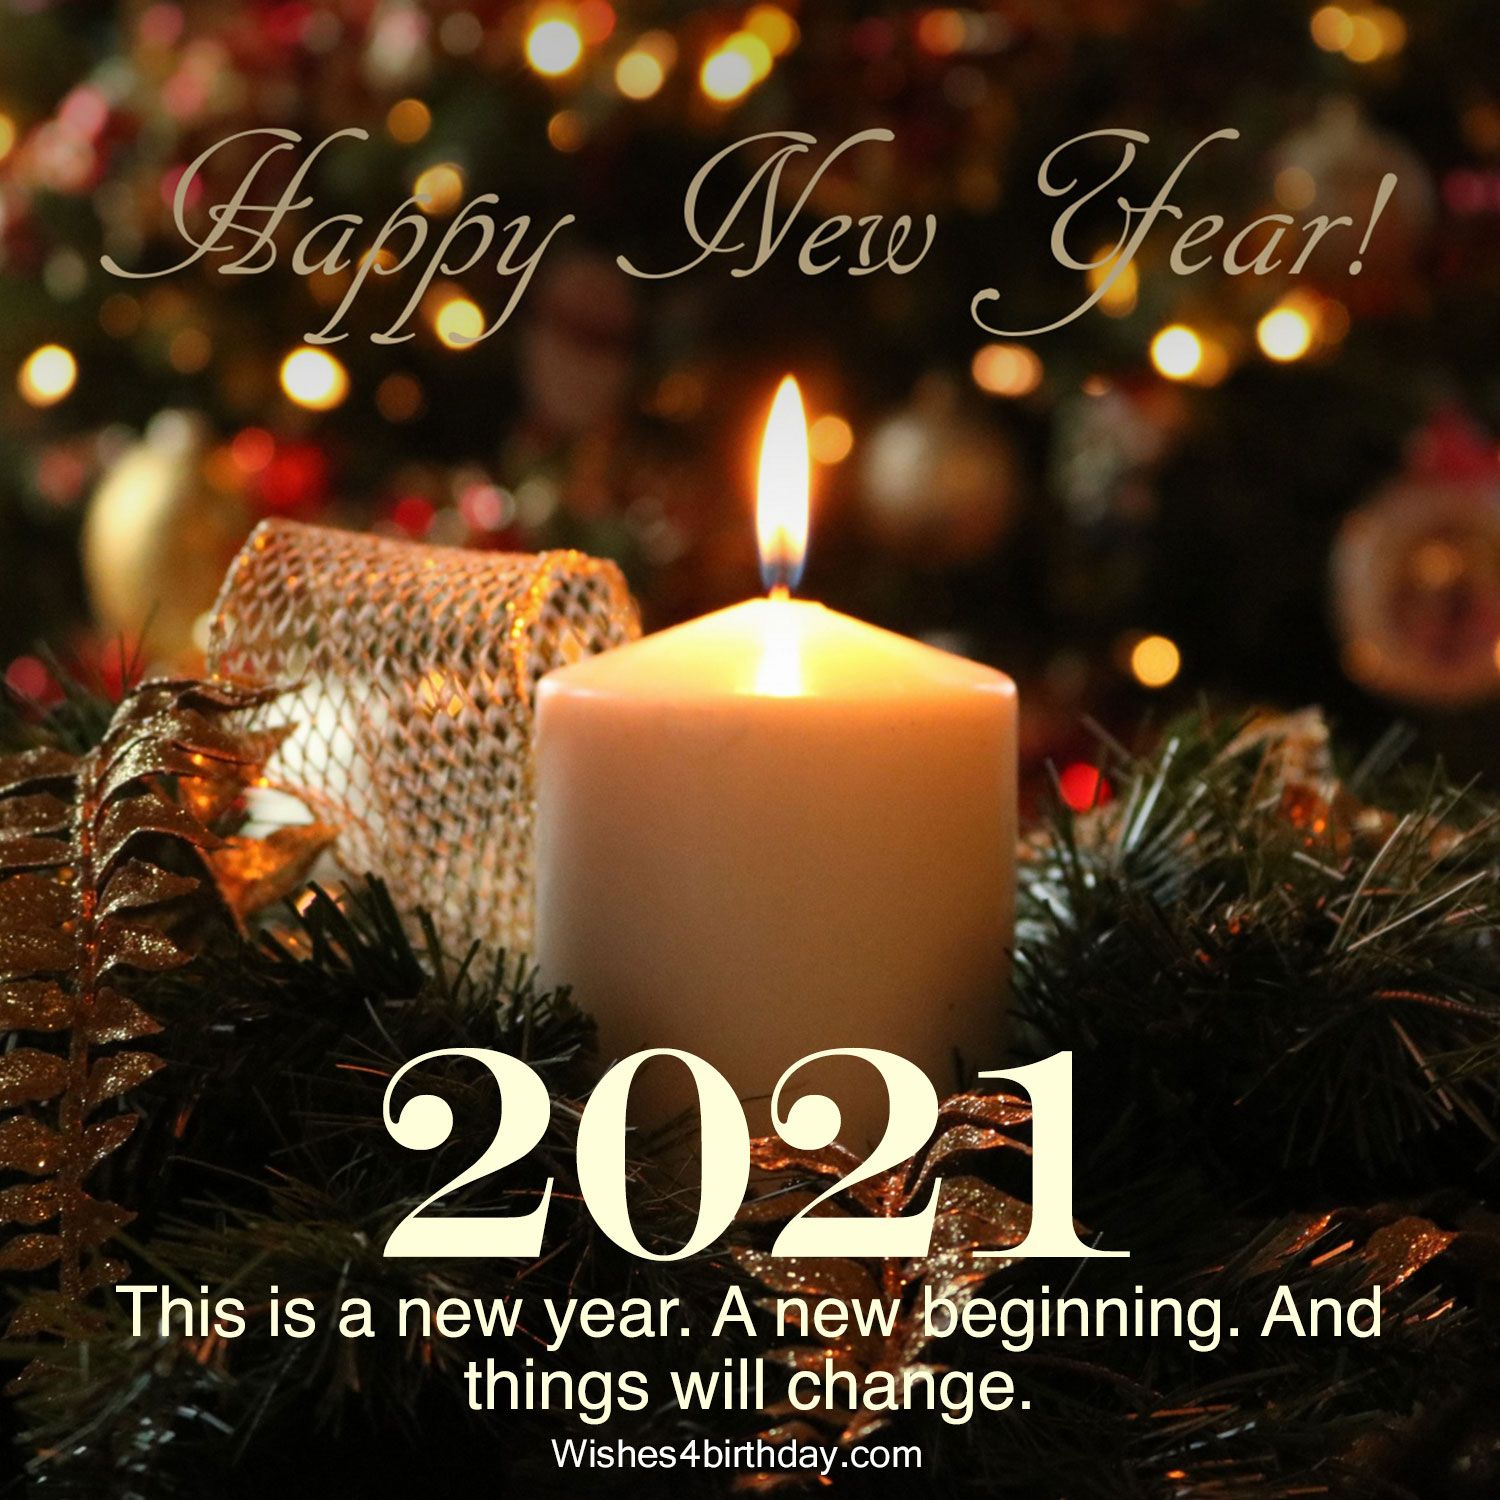 Christmas Show 2021 It Beginning Christmas Top Animated Pic Of Happy New Year 2021 With Countdown Happy New Year Pictures Happy New Year Greetings Happy New Year Fireworks